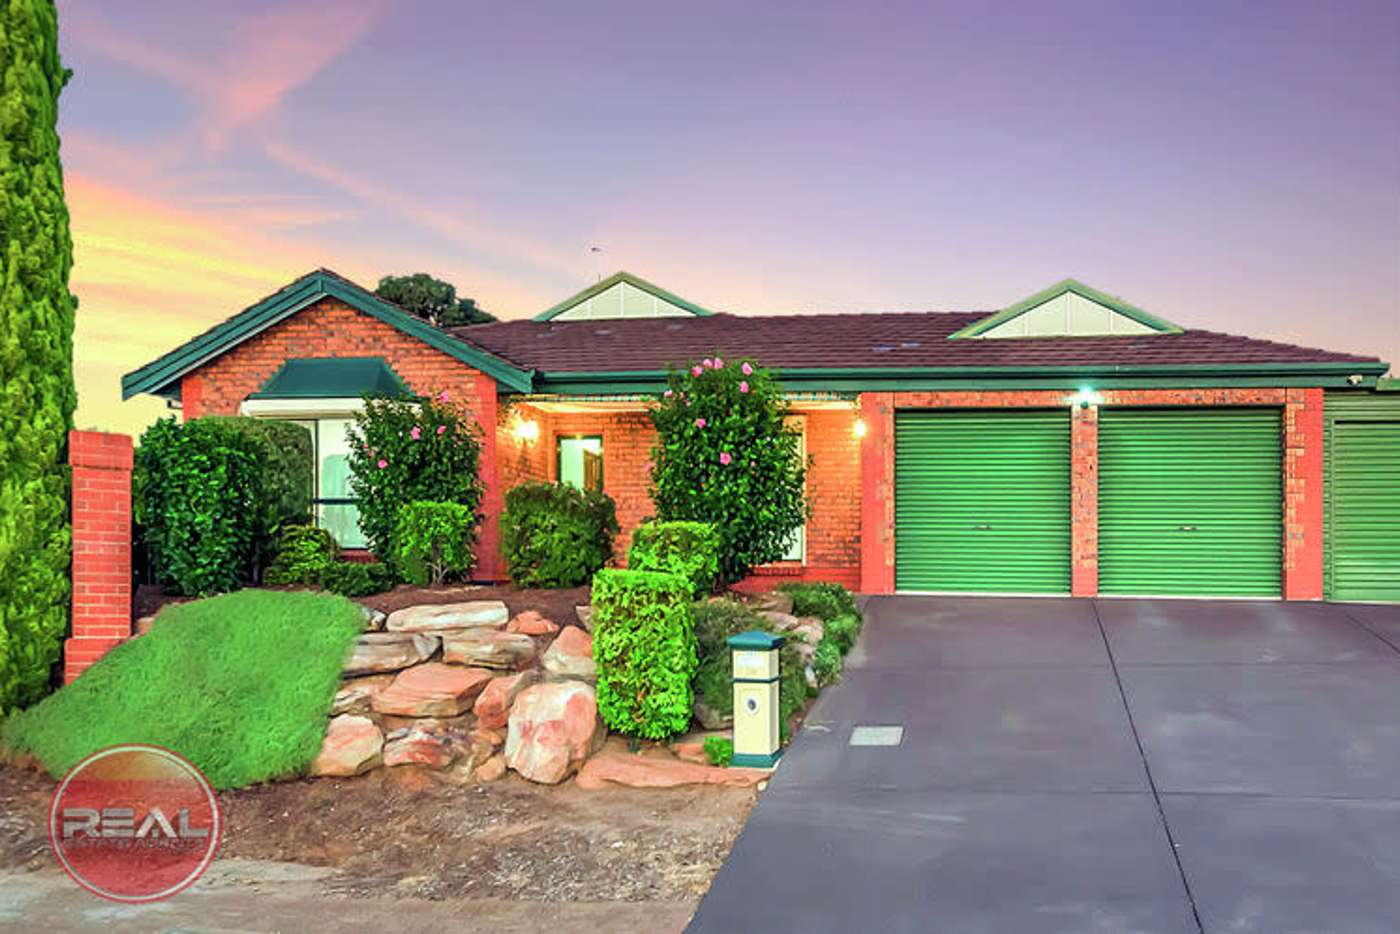 Main view of Homely house listing, 112 Highfield Drive, Hillbank SA 5112